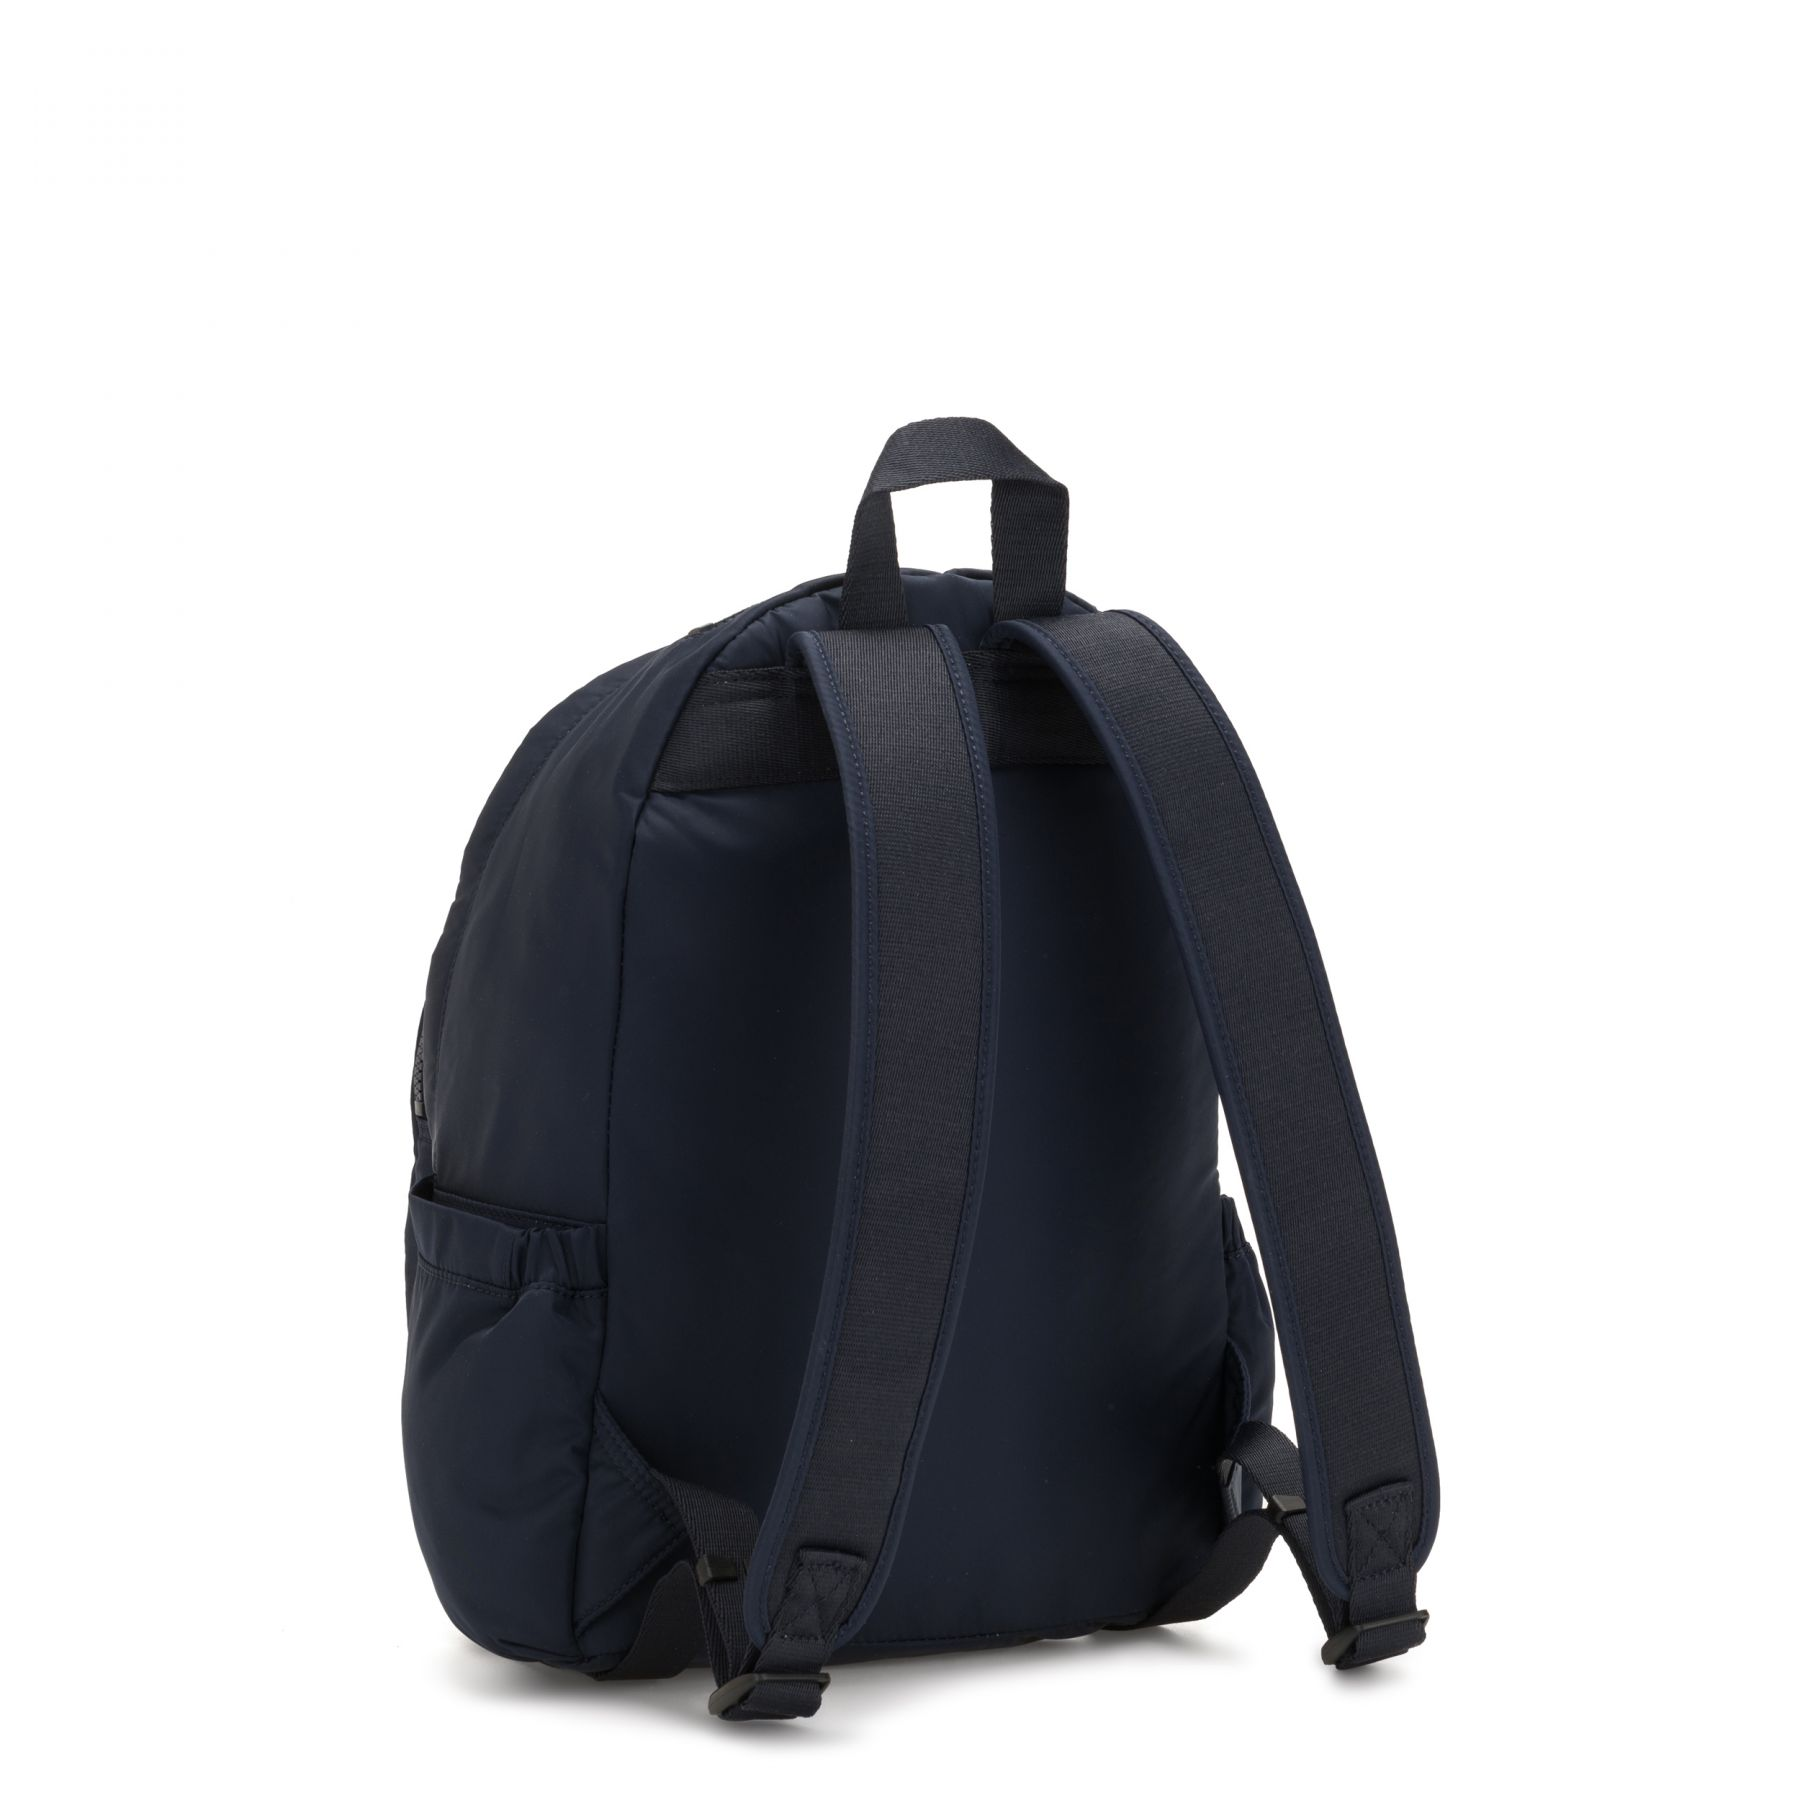 DELIA Latest Backpacks by Kipling - Back view